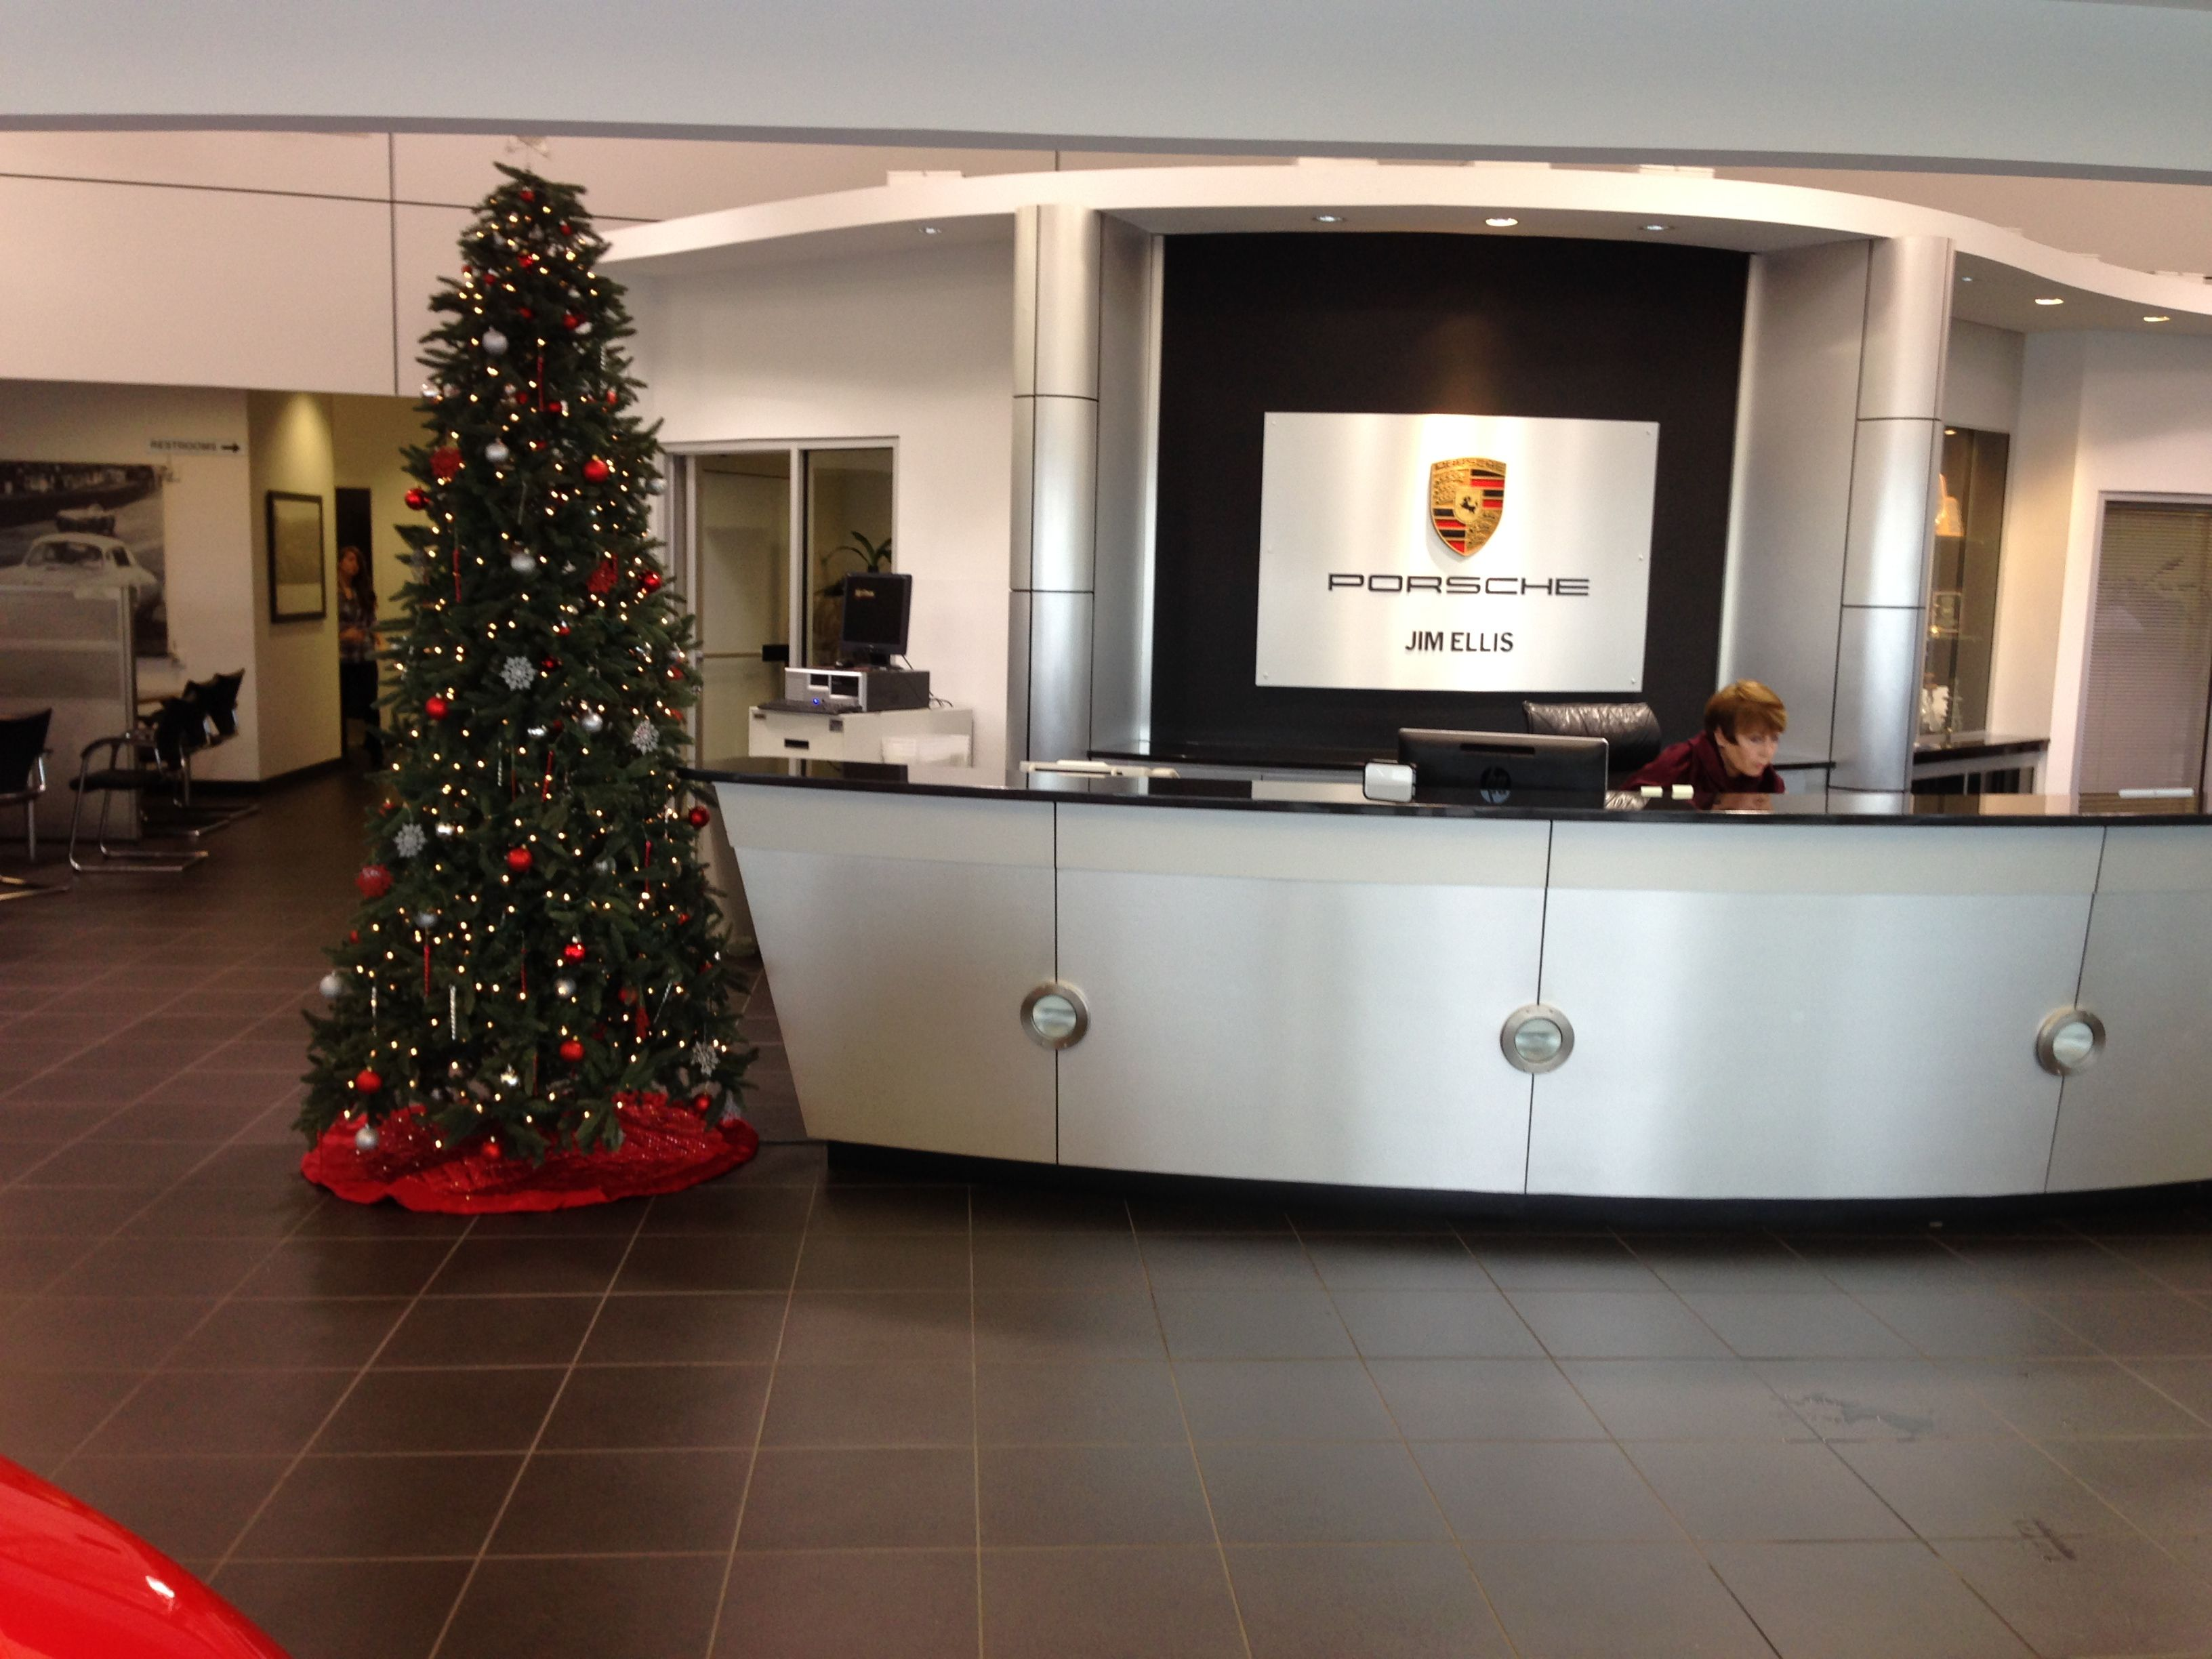 843d0c1b1511 Our 9ft tree with red and gold decorations at Jim Ellis Porsche  Atlanta   rental  Christmas  tree  extended